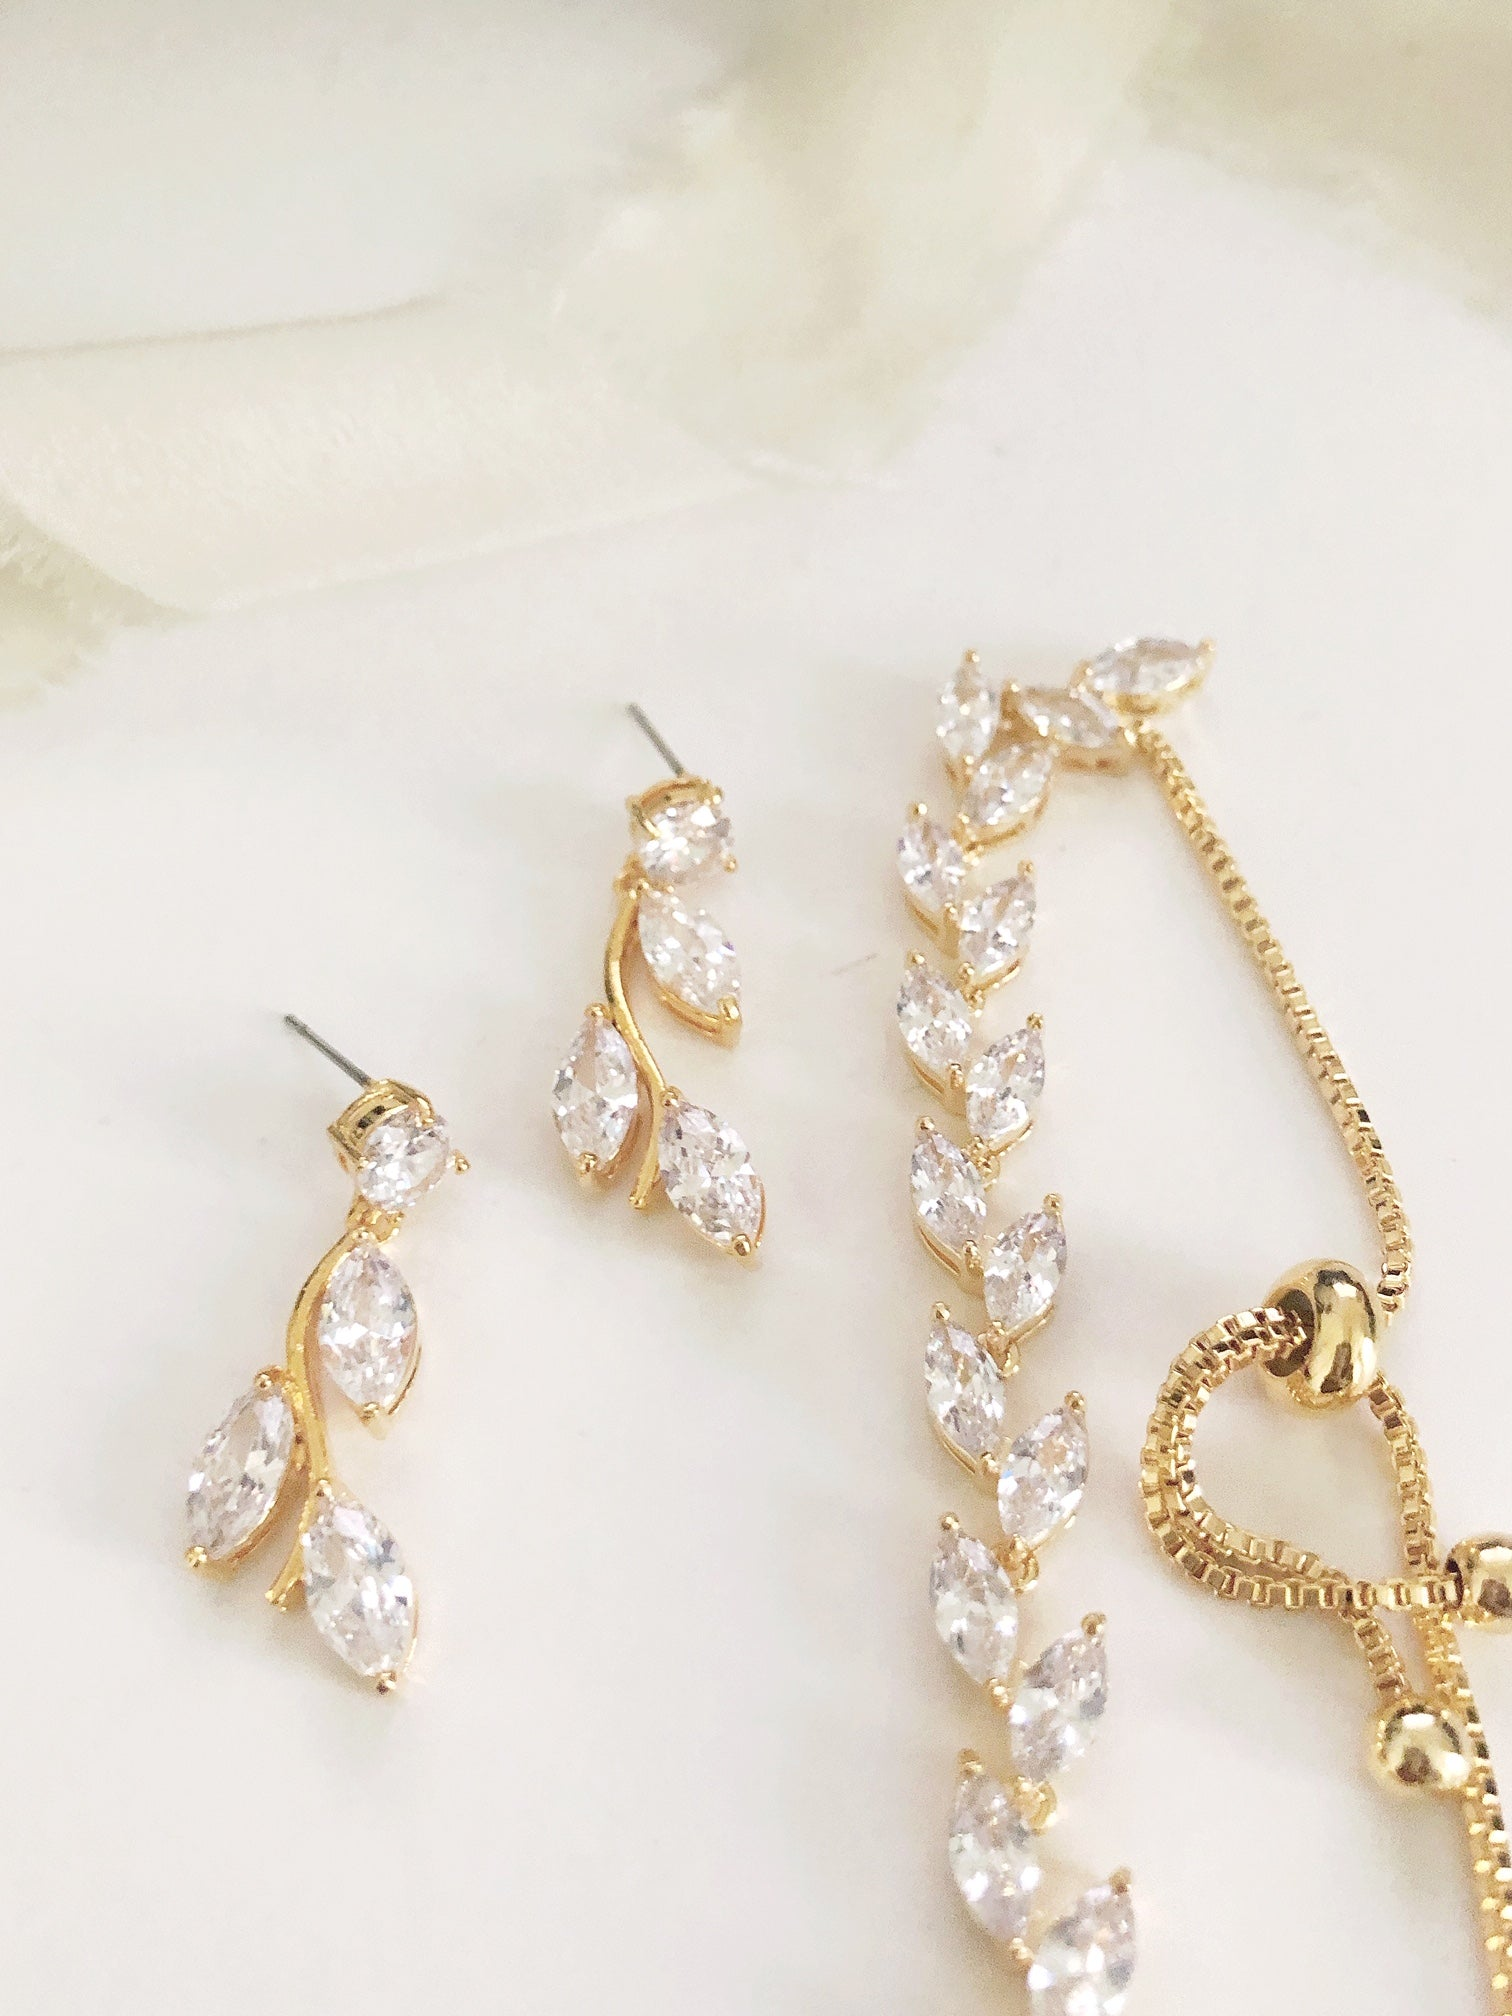 Ferna Gold CZ Diamond Earrings and Bracelet Set